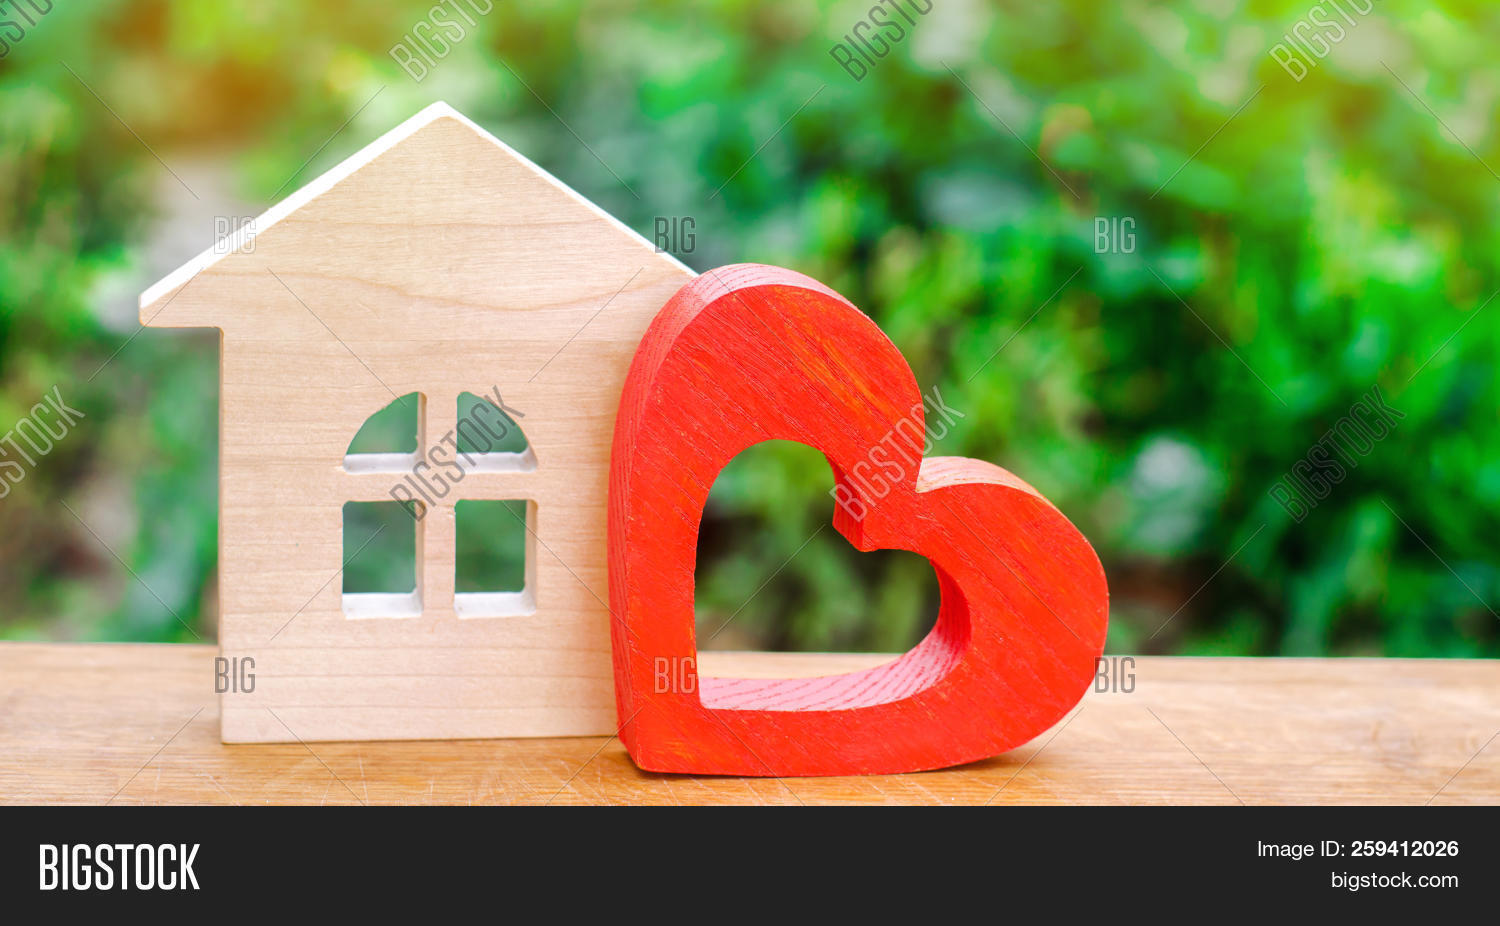 architecture,background,building,business,buy,charity,closeup,concept,construction,dream,estate,family,green,hand,heart,holding,home,house,housing,insurance,investment,loan,love,model,mortgage,nature,paper,property,real,red,rent,residential,sale,shape,small,symbol,valentine,wood,wooden